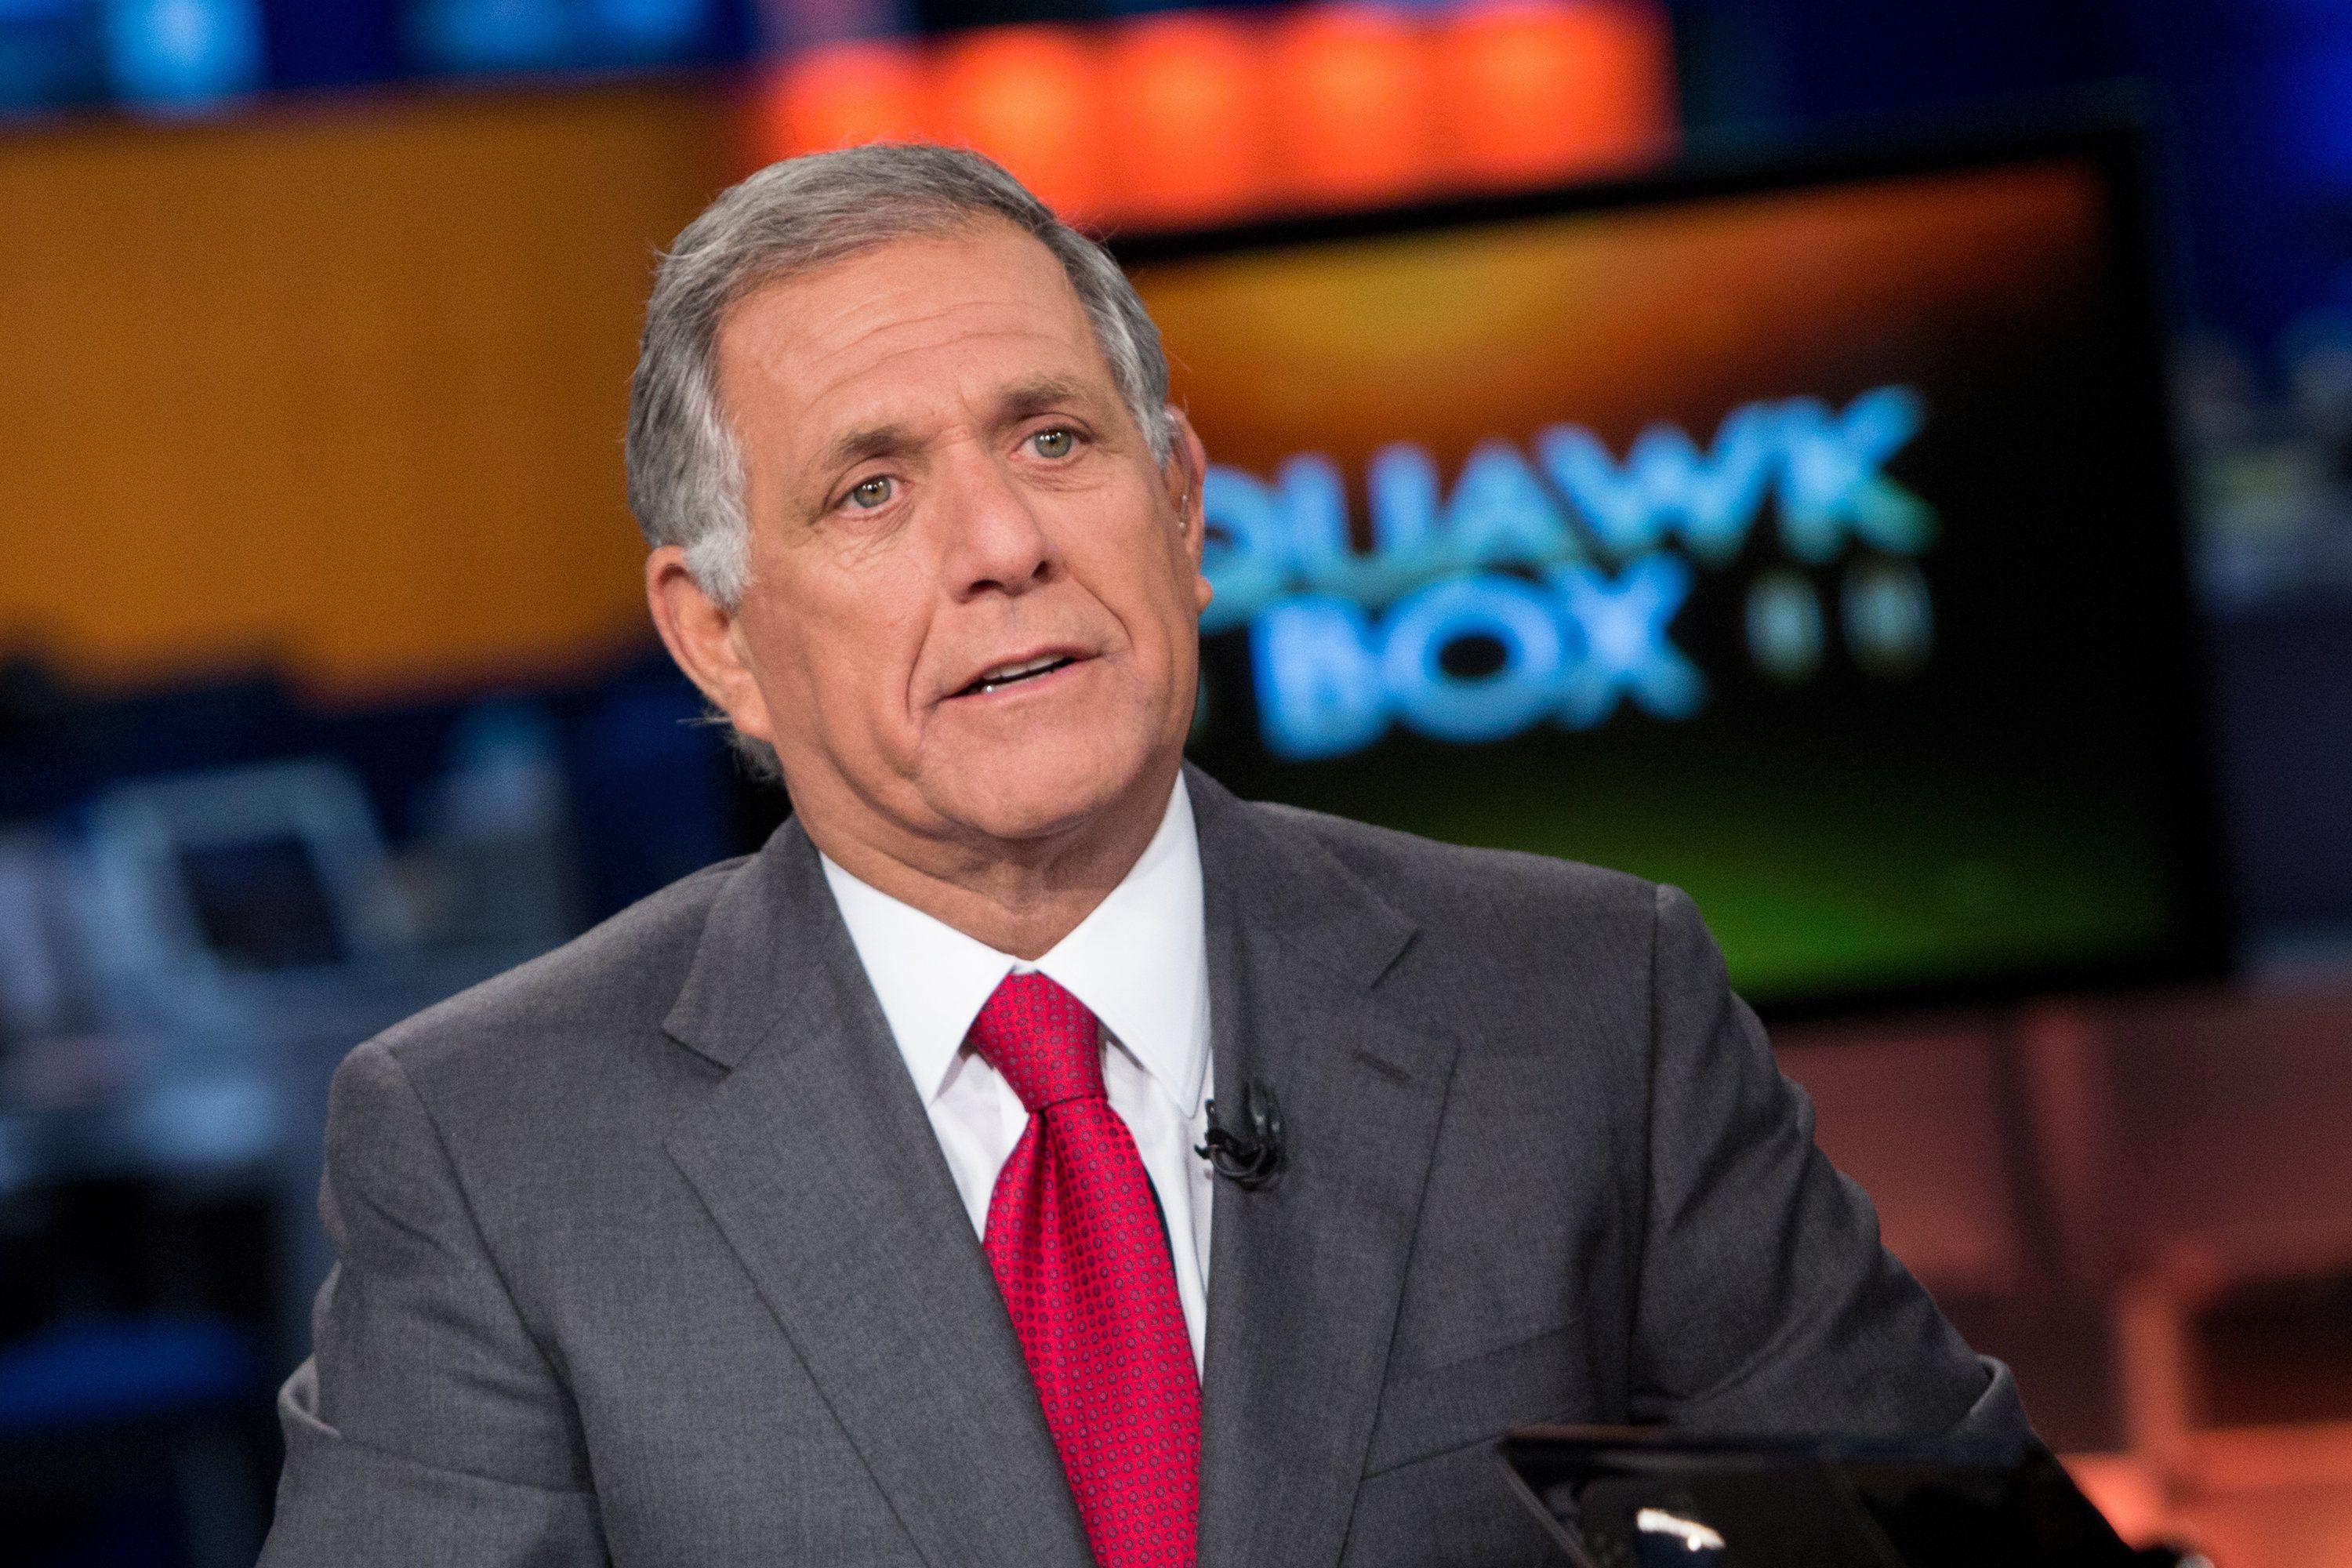 SQUAWK BOX -- Pictured: Les Moonves, President and Chief Executive Officer of CBS Corporation, in an interview on September 4, 2013 -- (Photo by: Adam Jeffery/CNBC/NBCU Photo Bank via Getty Images)